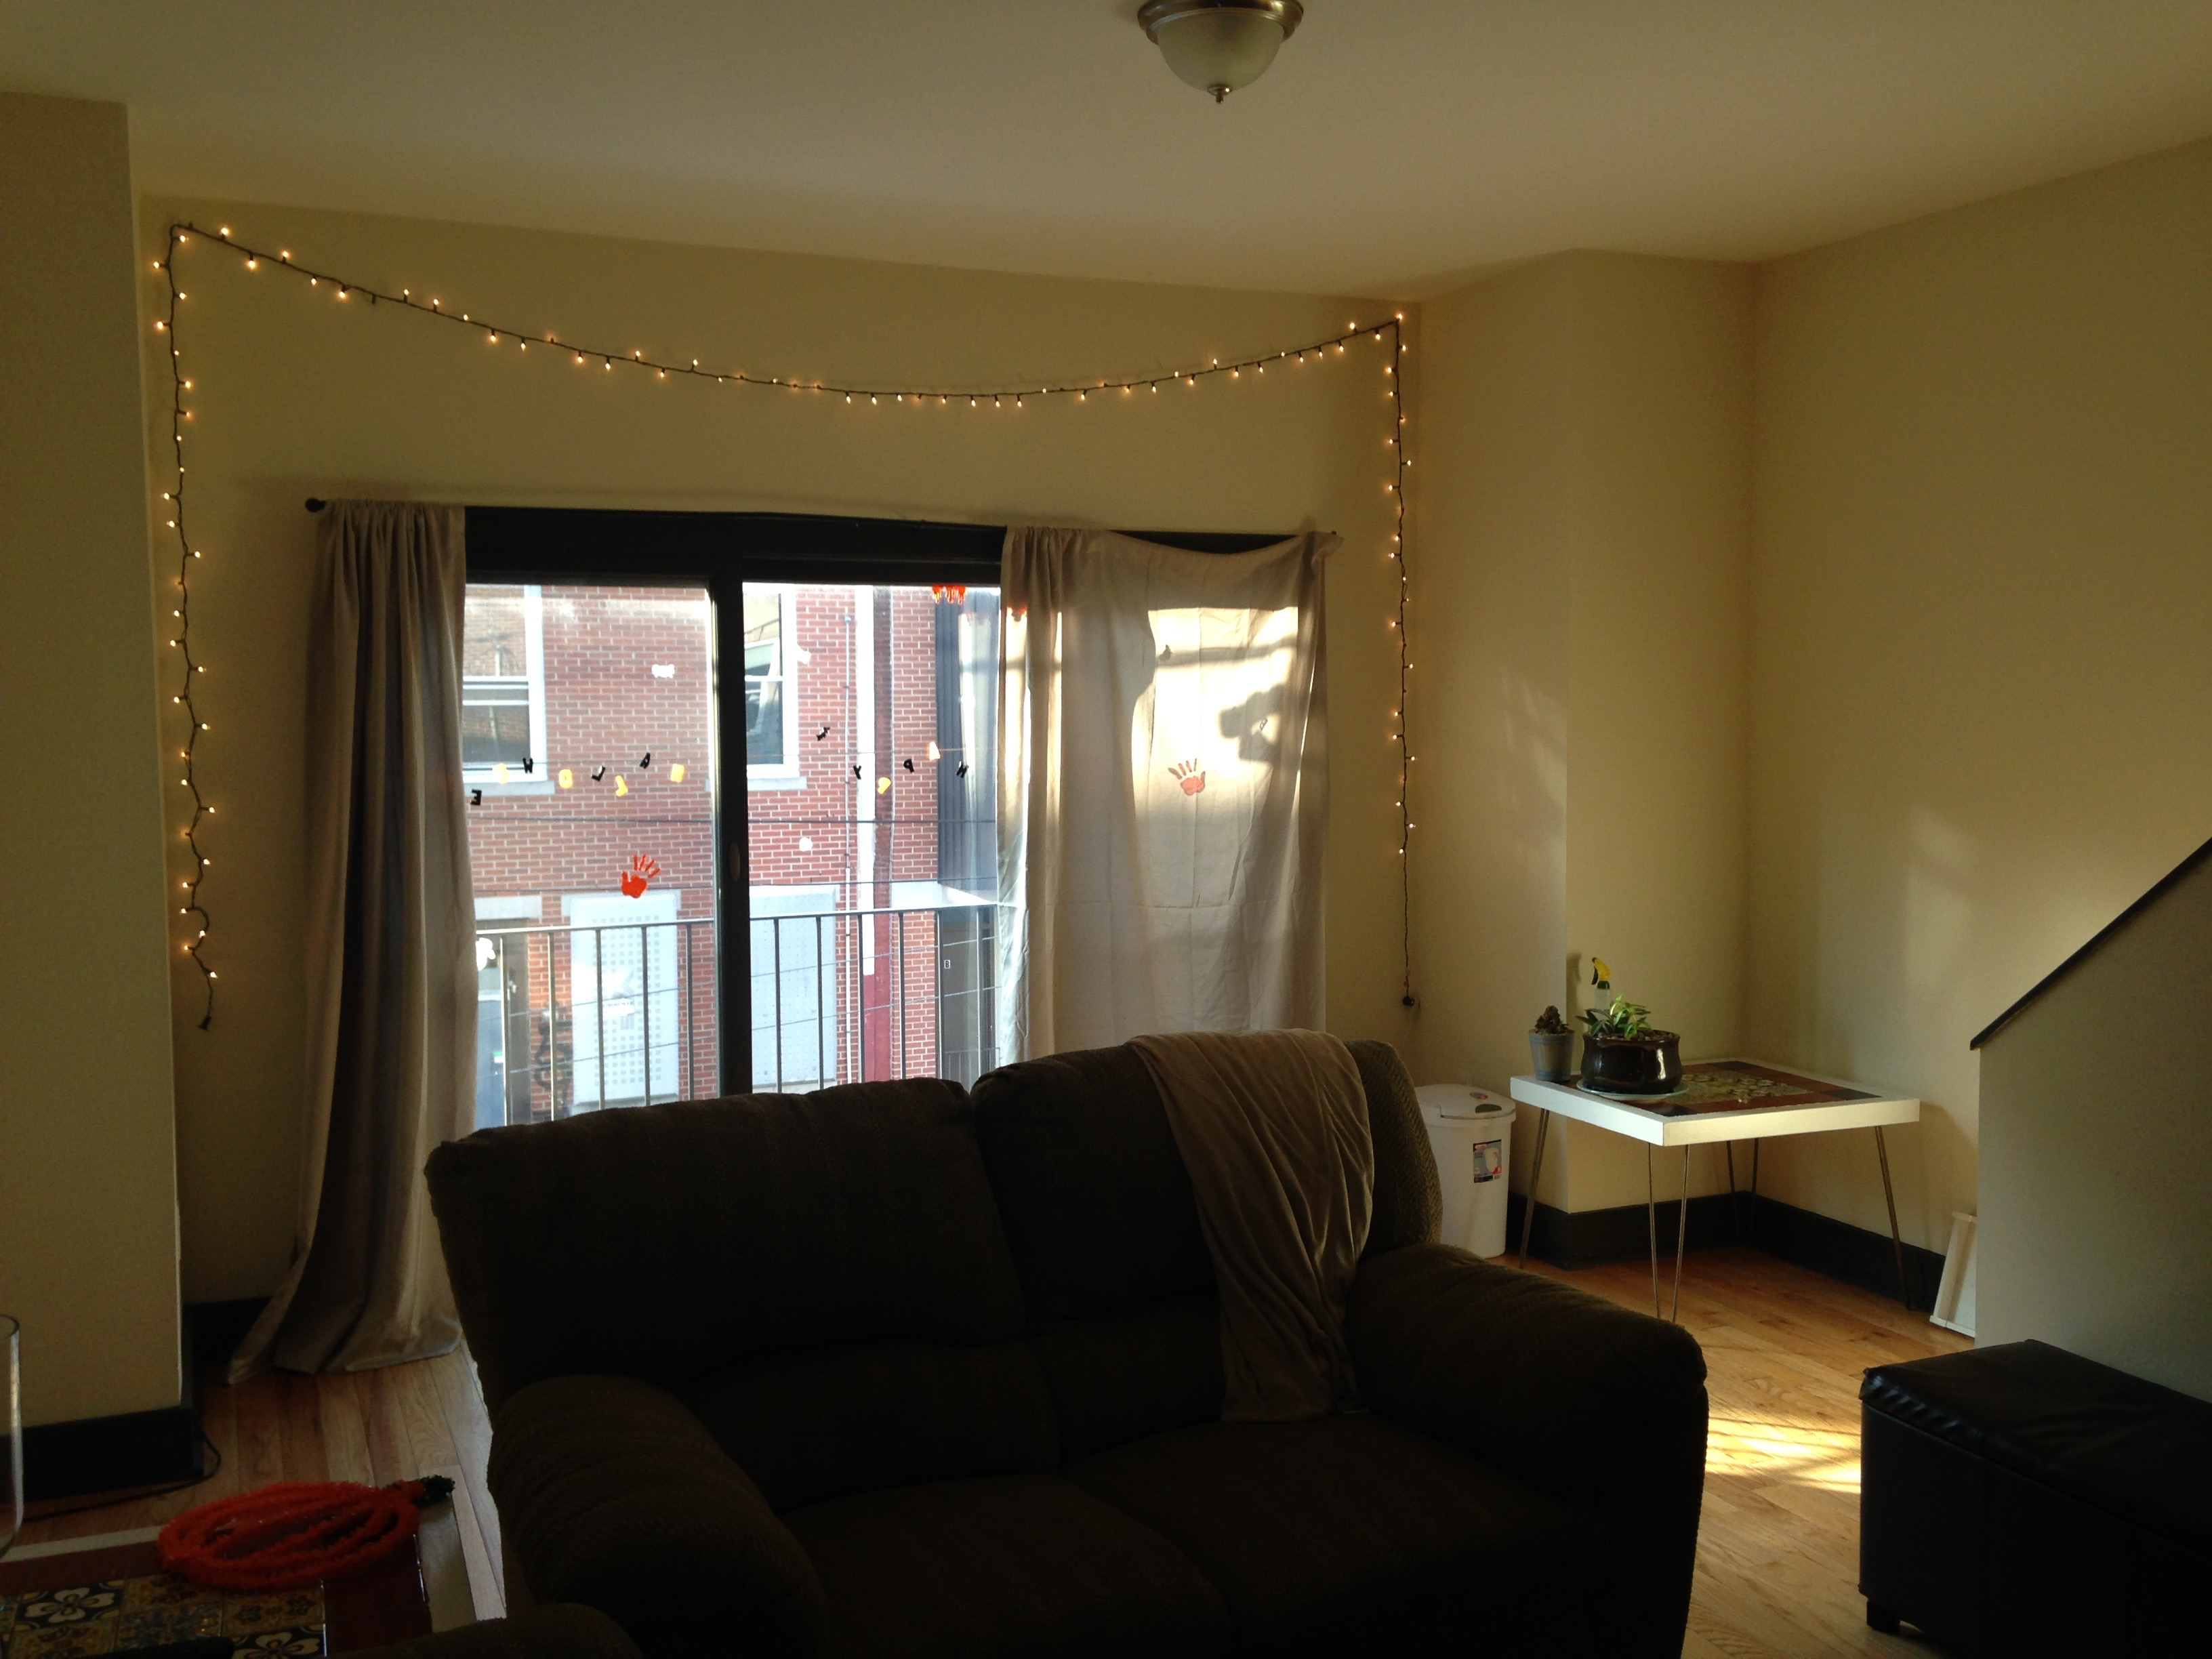 College sublease, college student housing near temple , temple off campus lofts